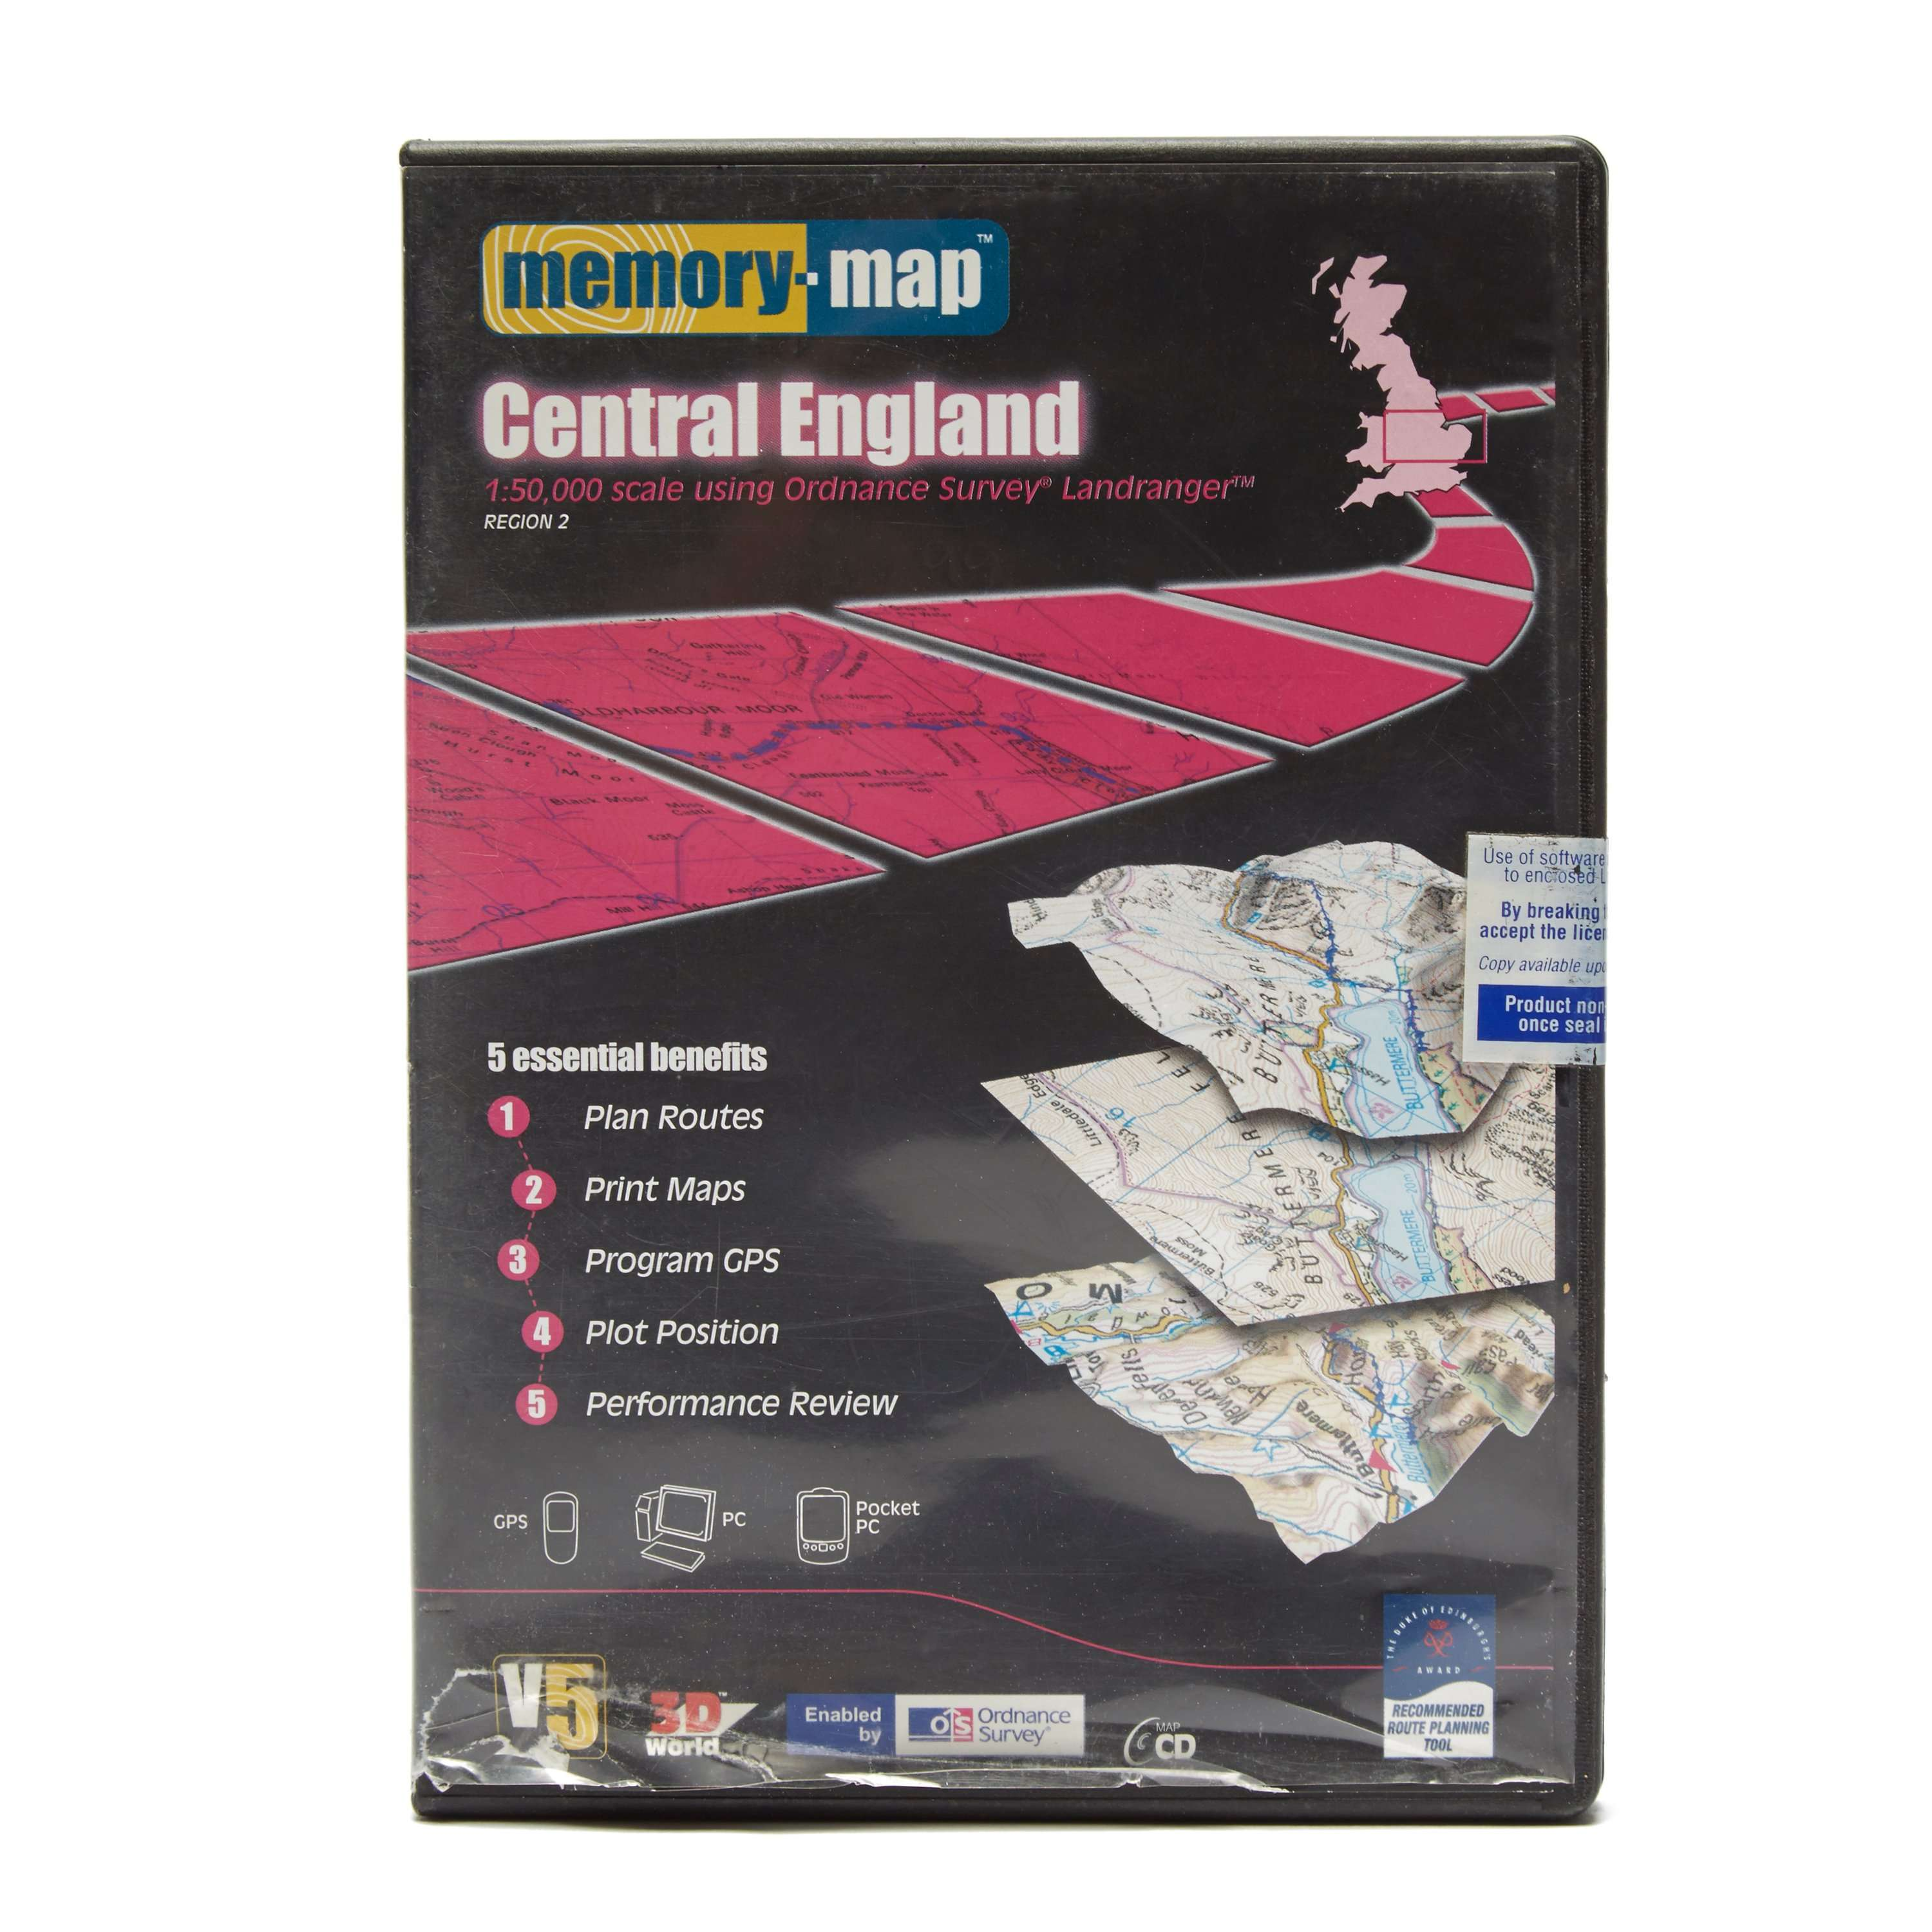 ANQUET OS Landranger Central England DVD Map